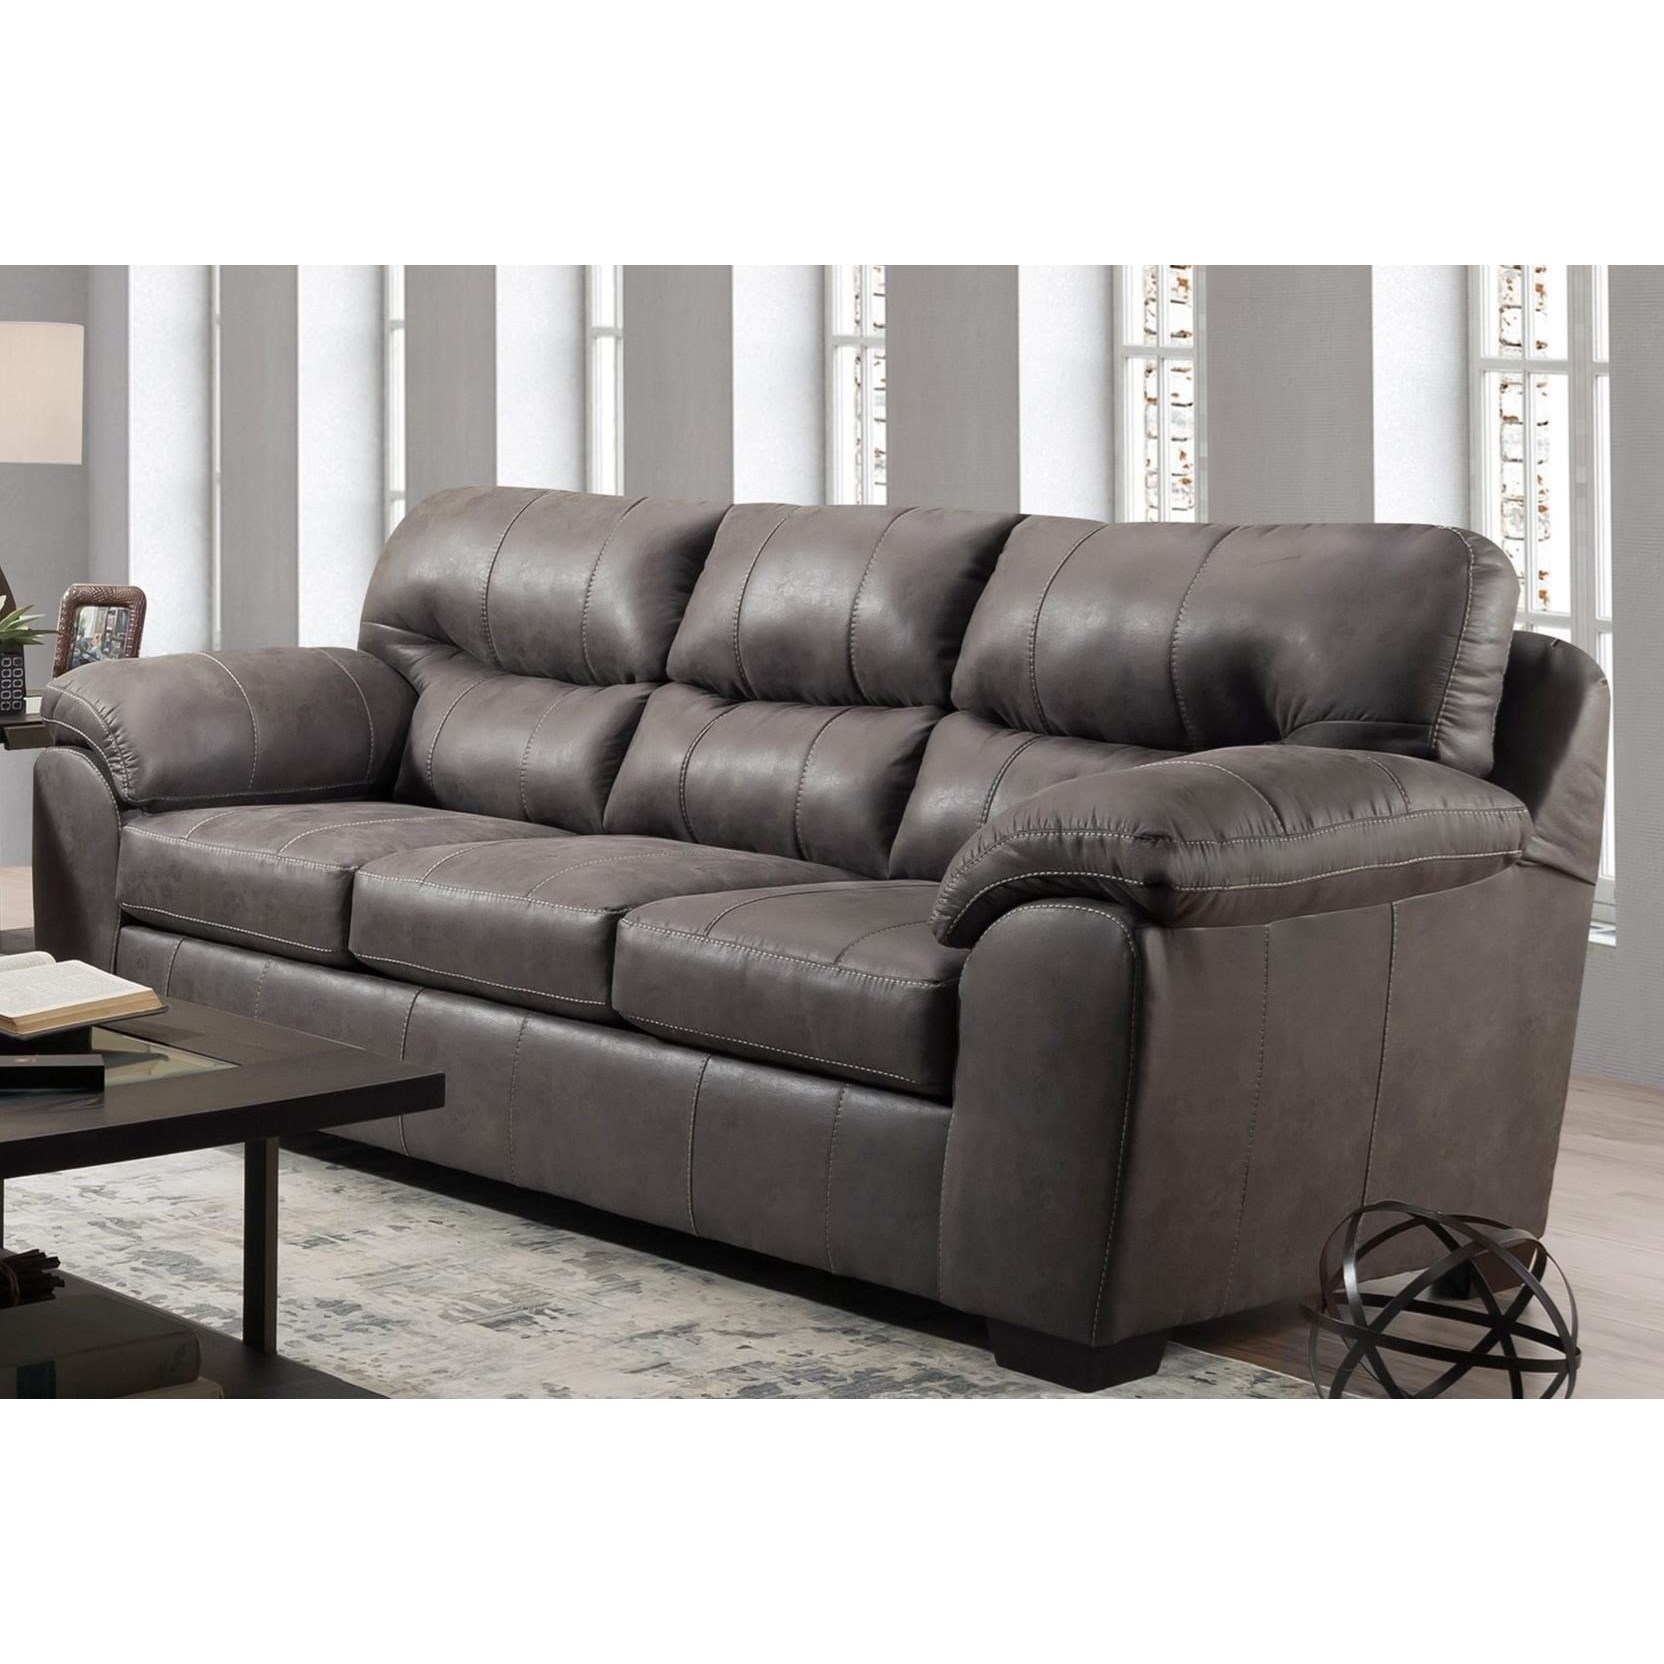 Vendor 610 1780 0180433 Casual Sofa With Pillow Arms Becker Furniture Sofas